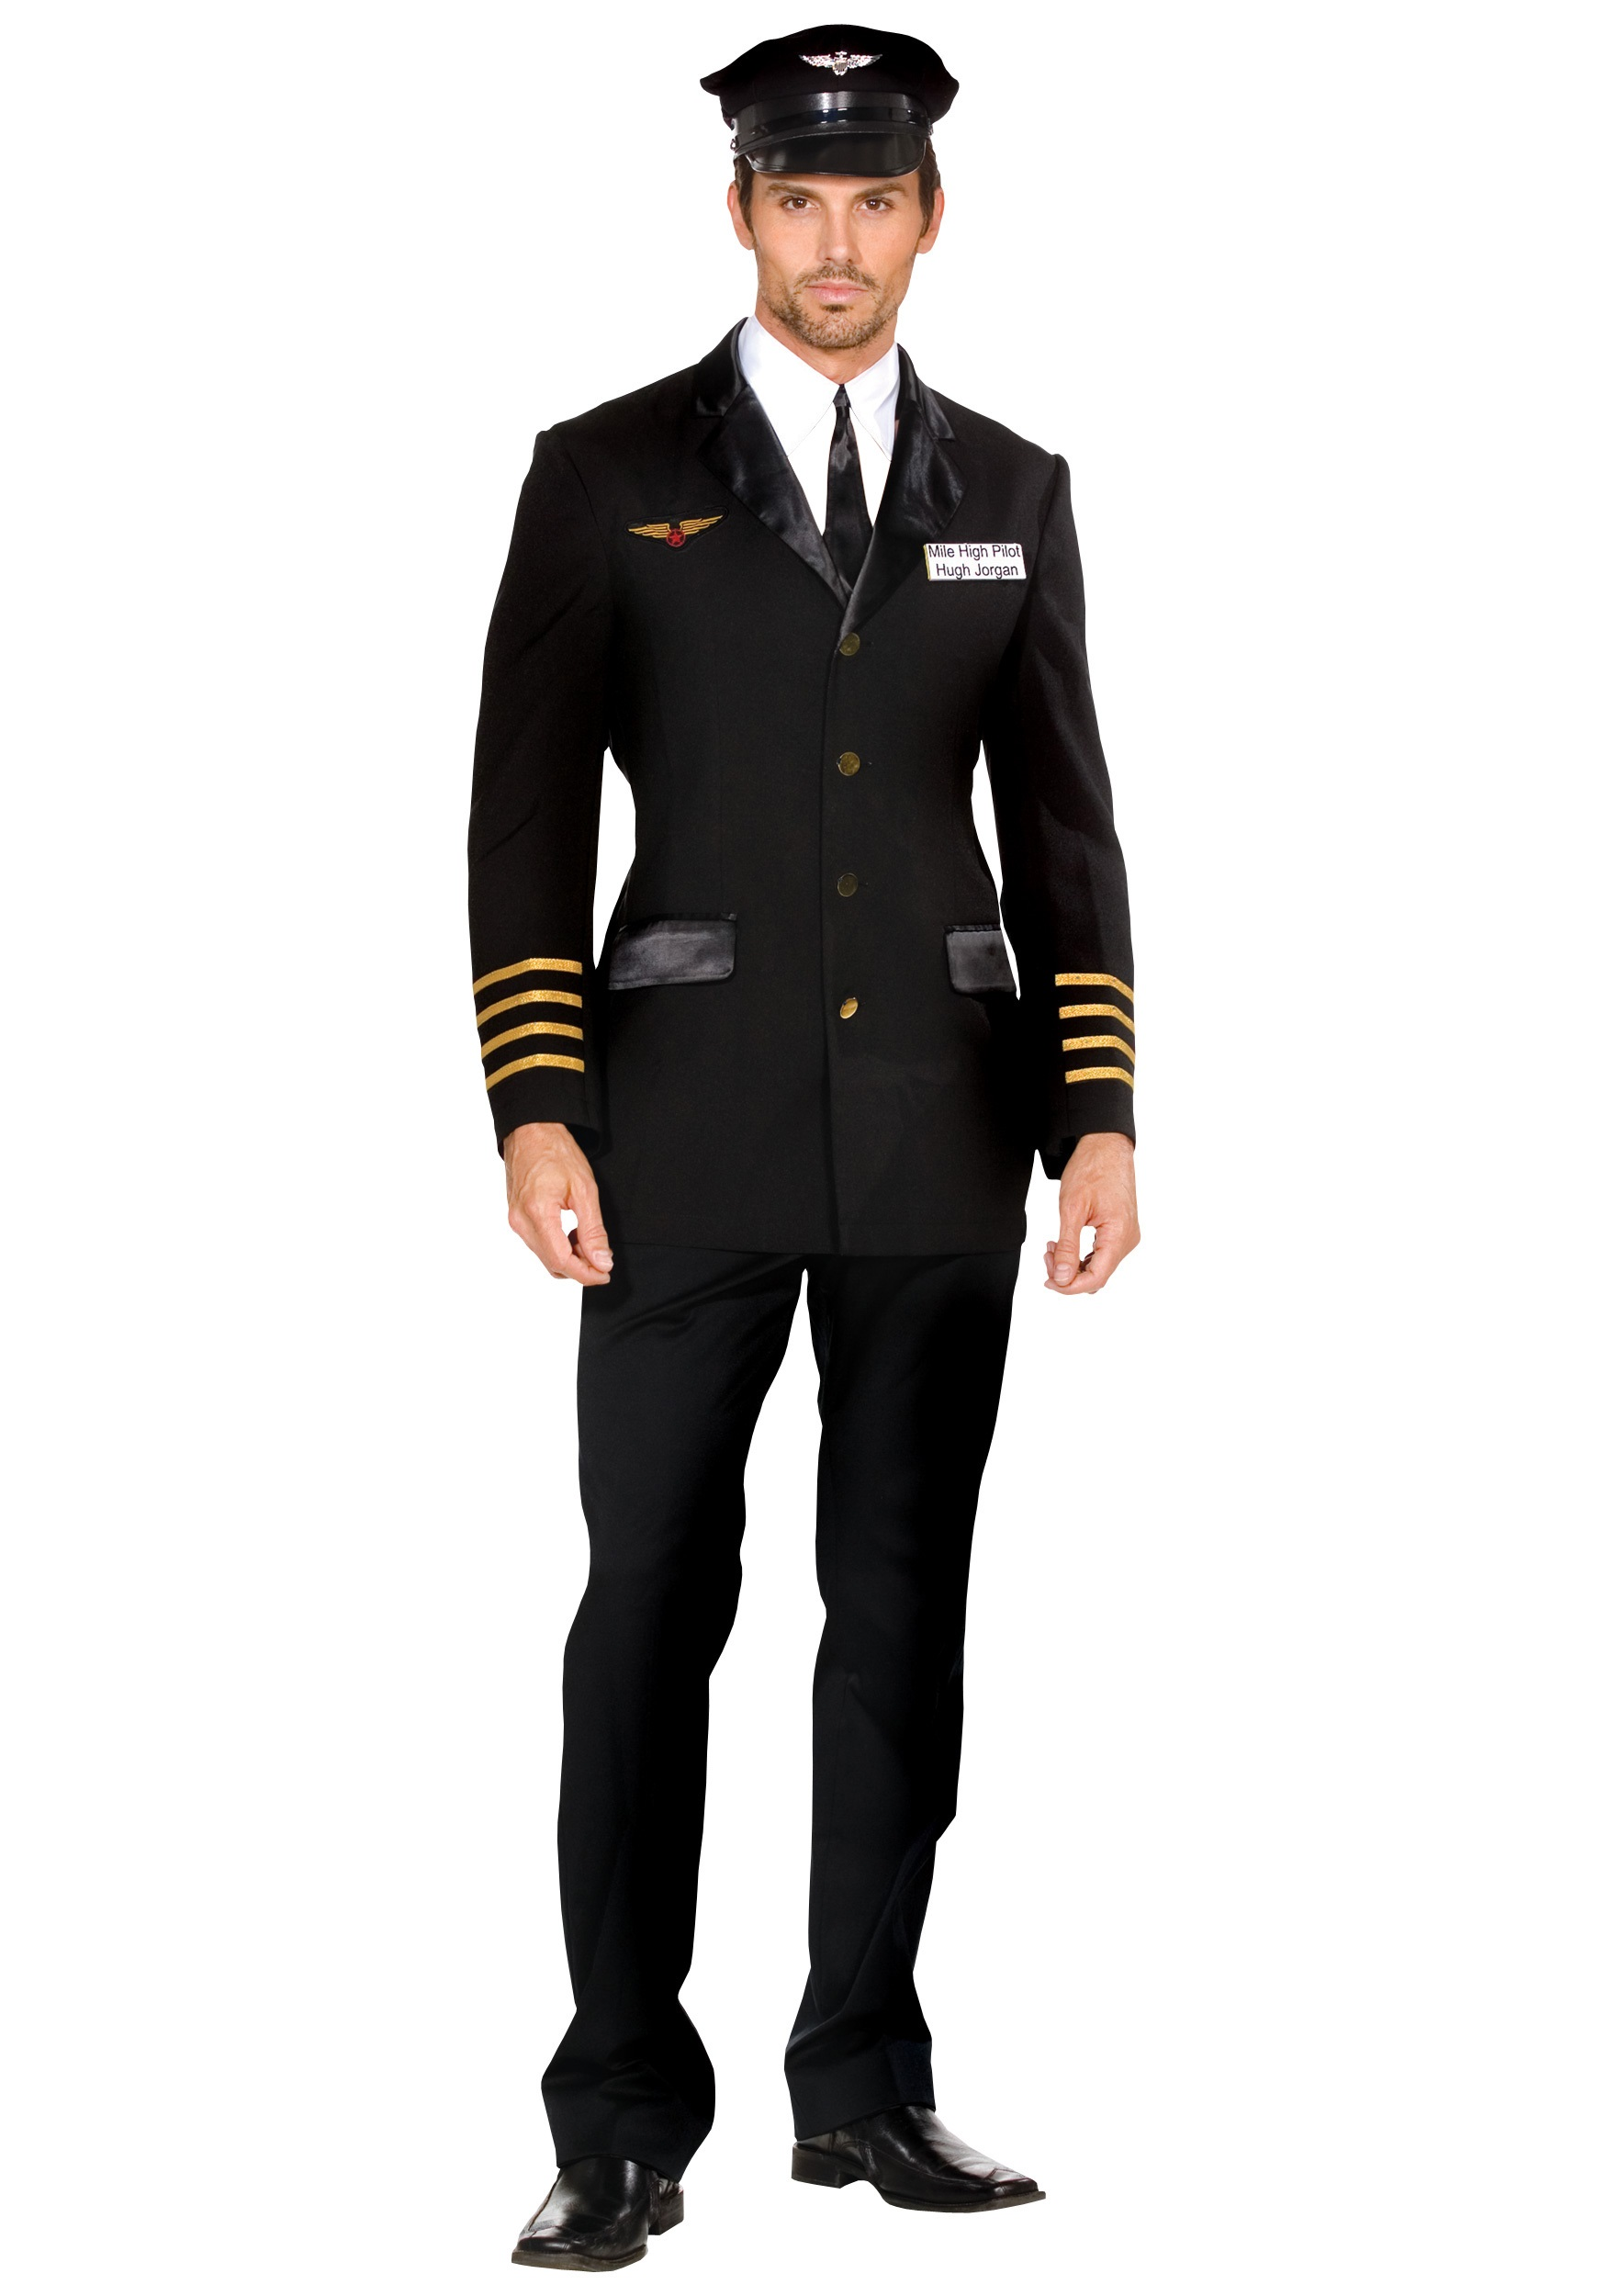 Halloween Decorations You Can Make At Home Men S Mile High Pilot Costume